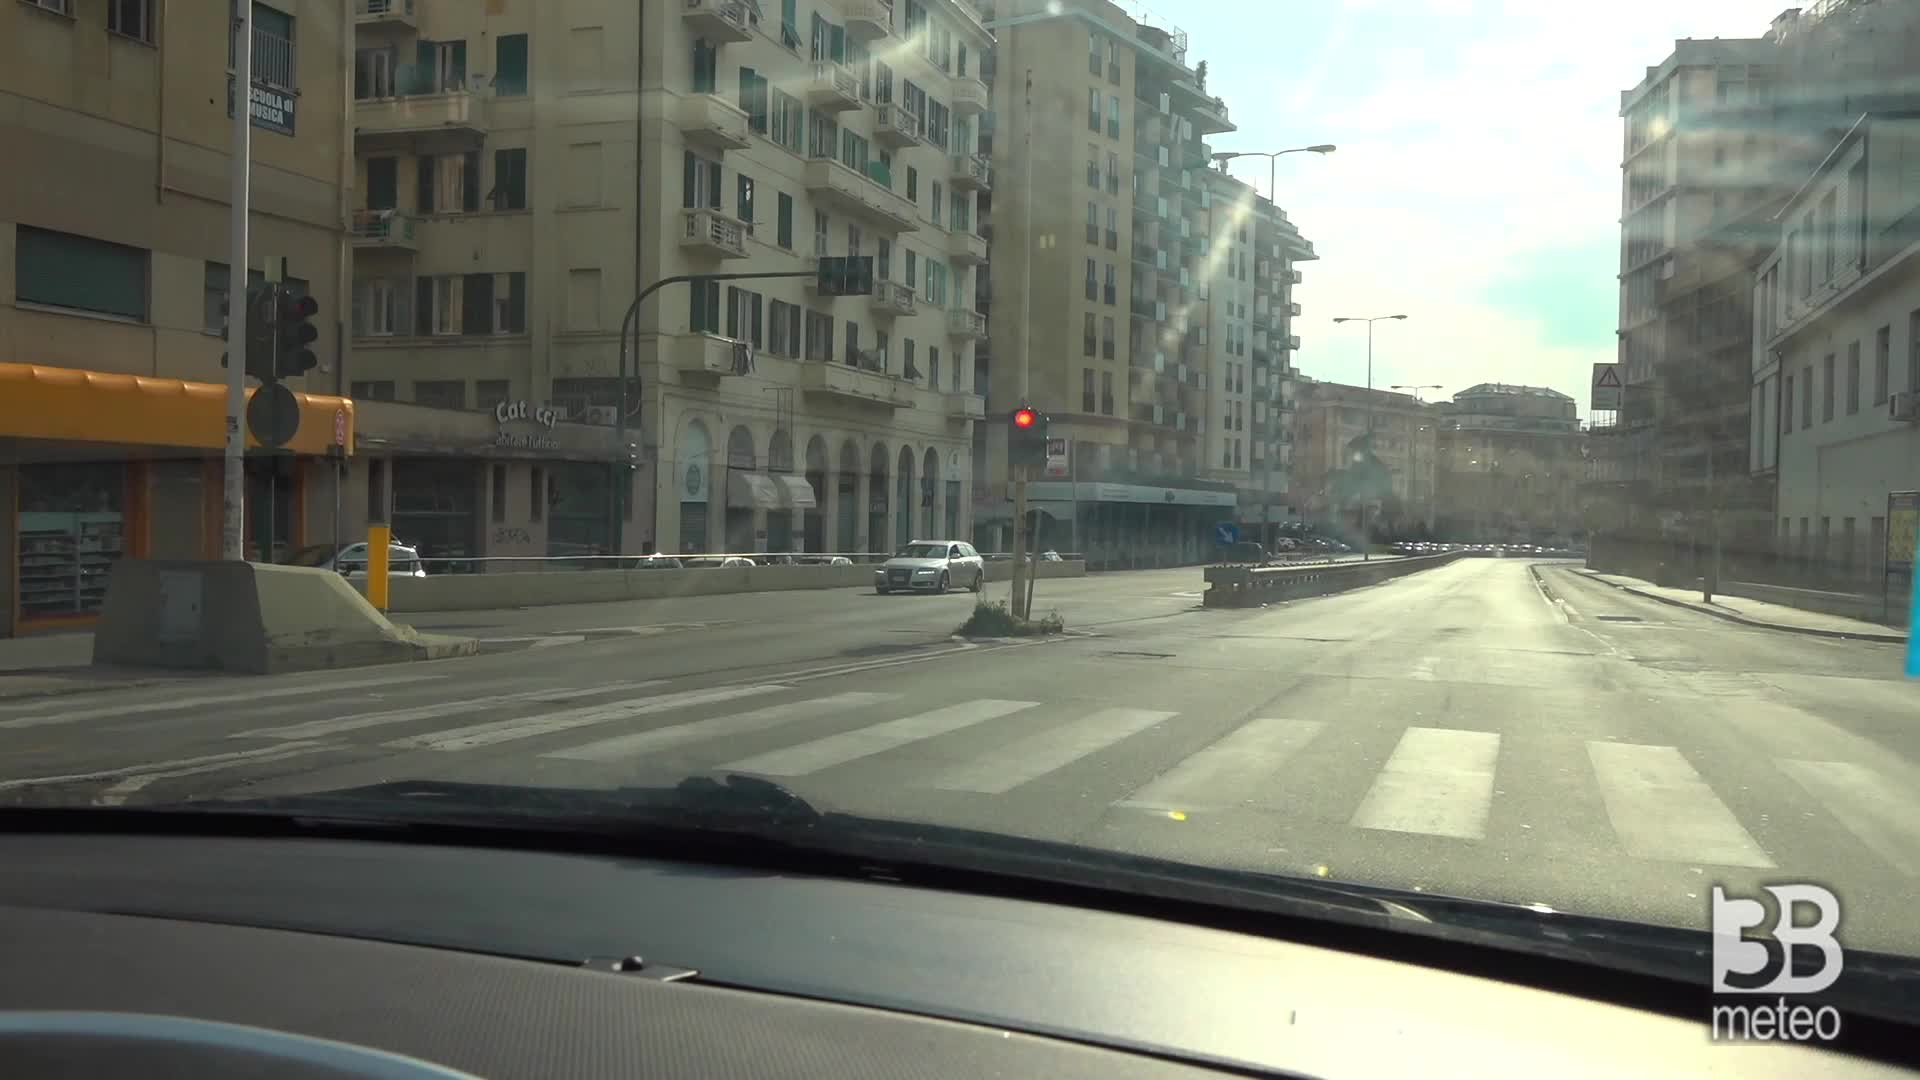 Camera car a Genova: mai così poche auto in strada